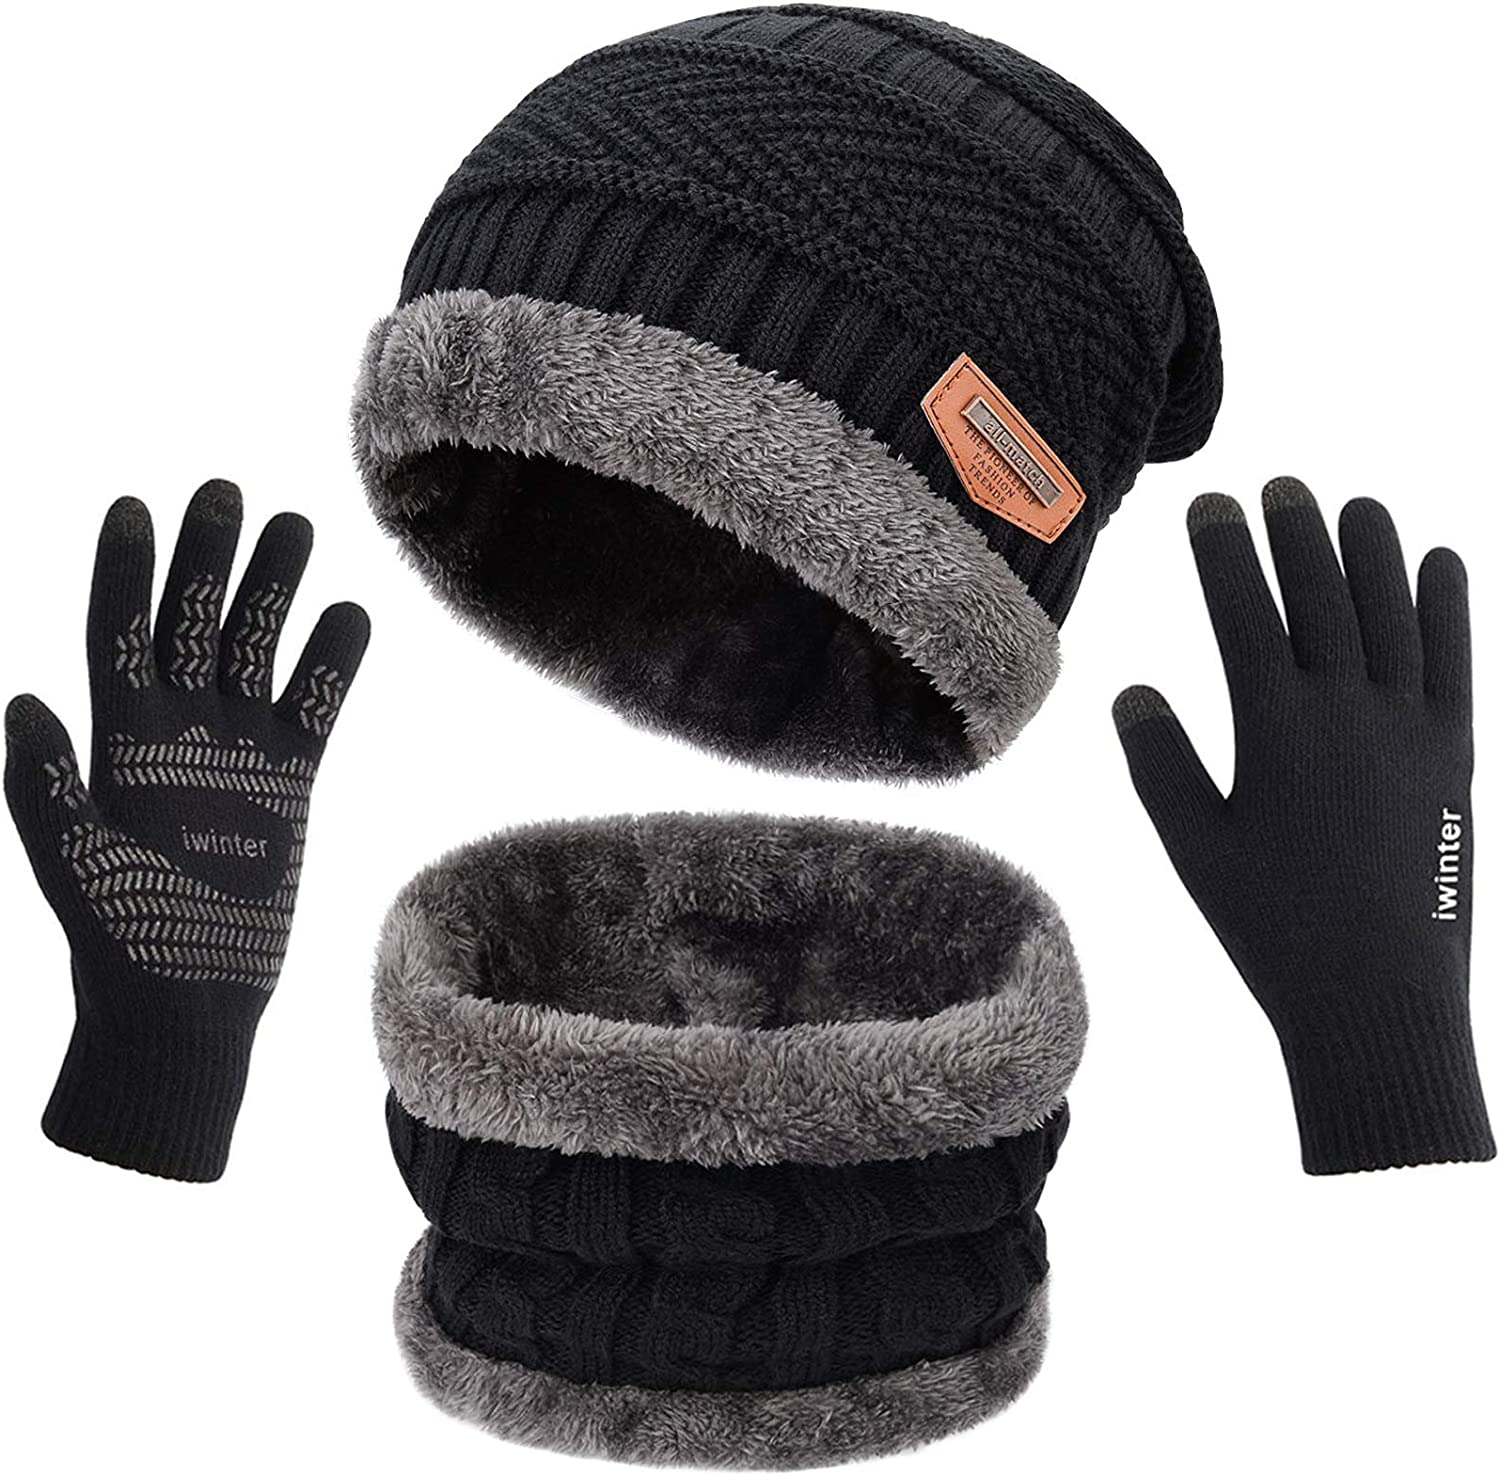 MAYLISACC New product Winter At the price of surprise Knit Beanie Hat Neck Warmer Scarf Touch and Scr